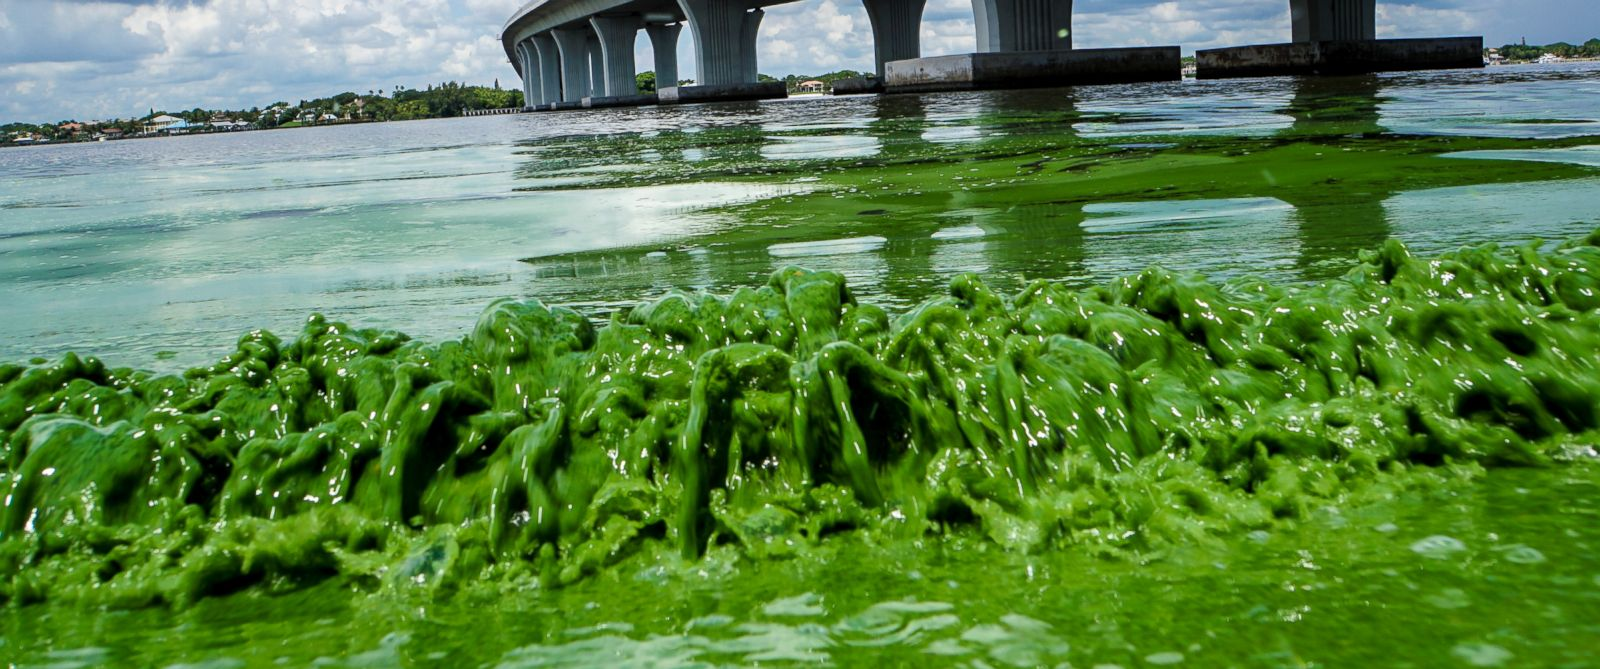 PHOTO: Water full of algae laps along the Sewells Point shore on the St. Lucie River under an Ocean Boulevard bridge, June 27, 2016.